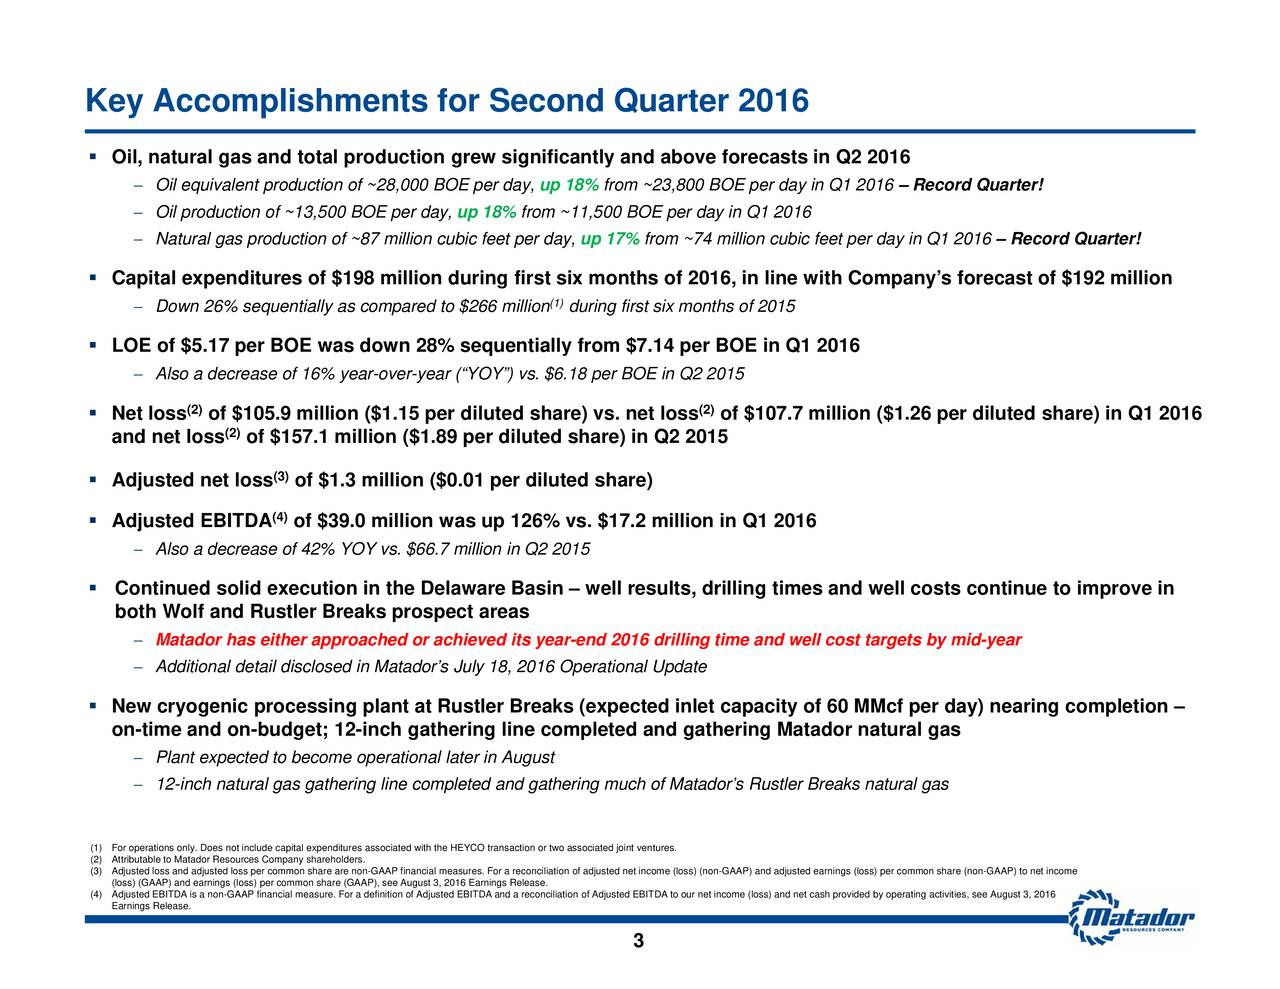 Companys forecast of $192 million MMcf per day) nearing completion of $107.7 million ($1.26 per diluted share) in Q1 2016 (2) tadors Rustler Breaks natural gas s, drilling times and well costs contto our net income (loss) and net cash provided by operating activities, see August 3, 2016 tures.loss) (non-GAAP) and adjusted earnings (loss) per common share (non-GAAP) to net income from ~74 million cubic feet per day in Q1 2016 3 from ~23,800 BOE per day in Q1 2016 nd 2016 drilling time and well cost targets by mid-year up 17% during first six months of 2015 (1) mpleted and gathering Matador natural gas up 18% ially from $7.14 per BOE in Q1 2016 gnificantly andfirst six months of 2016, in line with r Breaks (expected inlet capacity of 60 iluted share) vs. net loss up 18% s July 18, 2016 Operational UpdateFor a reconciliation of adjusted net incom completed and gathering much of Ma million cubic feet per day, ational later in August year-over-year (YOY) vs. $6.18 per BOE in Q2 2015 easure. For a definition of Adjusted EBITDA and a reconciliation of Adjusted EBITDA of $of $39.0 million was up 126% vs. $17.2 million in Q1 2016on-GAAP financial (3) (4) of $157.1 million ($1.89 per diluted share) in Q2 2015 (2) of $105.9 million ($1.15 per d (2) OilOilNatural gas production of ~87r day,6dpa,edatoecr6aaeldonthnaYedtte12ixprseeatiMnitadgrioe5iritlyear-e Oil, natural gaCsapitaleotElendNtutcoipefgtlAsdeuiltodlEsuIrn8A% seNqewectryogenic procd(ss(AAPgapeangt(s)Reosmoeshare (GAAP), see August 3, 2016 Earnings Release. Key Accomplishments for Second Quarter 2016     (1) For operations only. Does not include capital expenditures associated with the HEYCO transaction or two associated joint ven